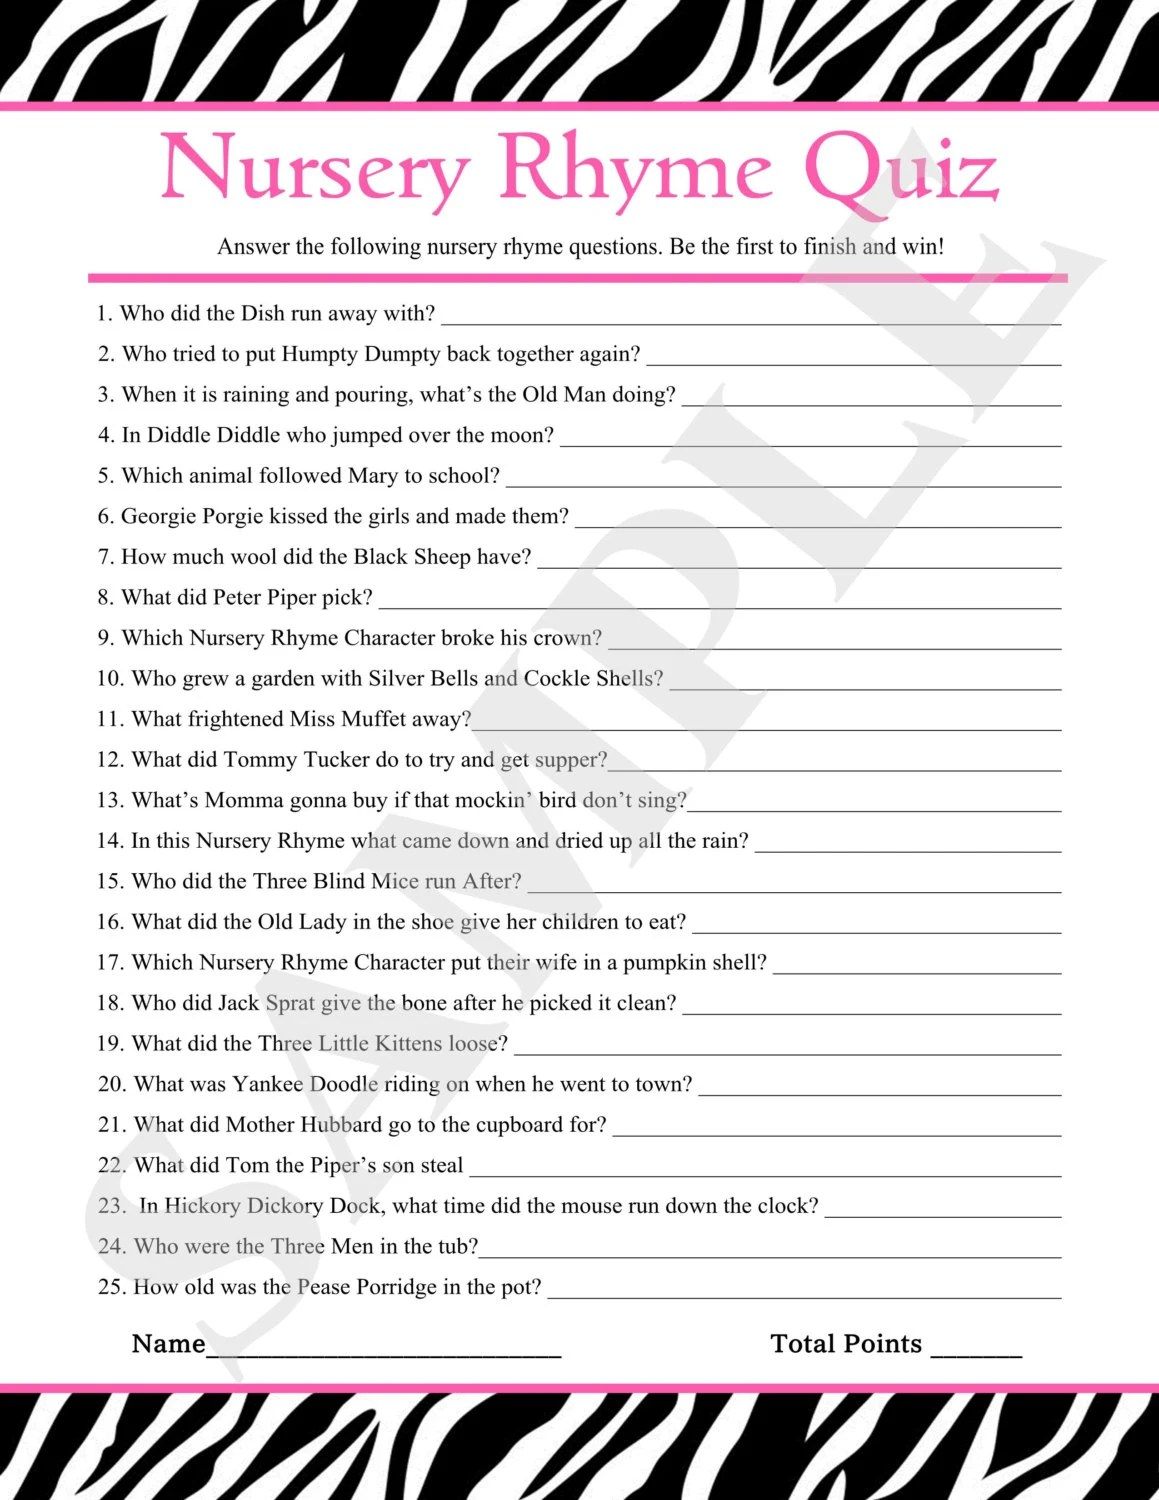 Instant Download Printable Nursery Rhyme Quiz Amp Answers